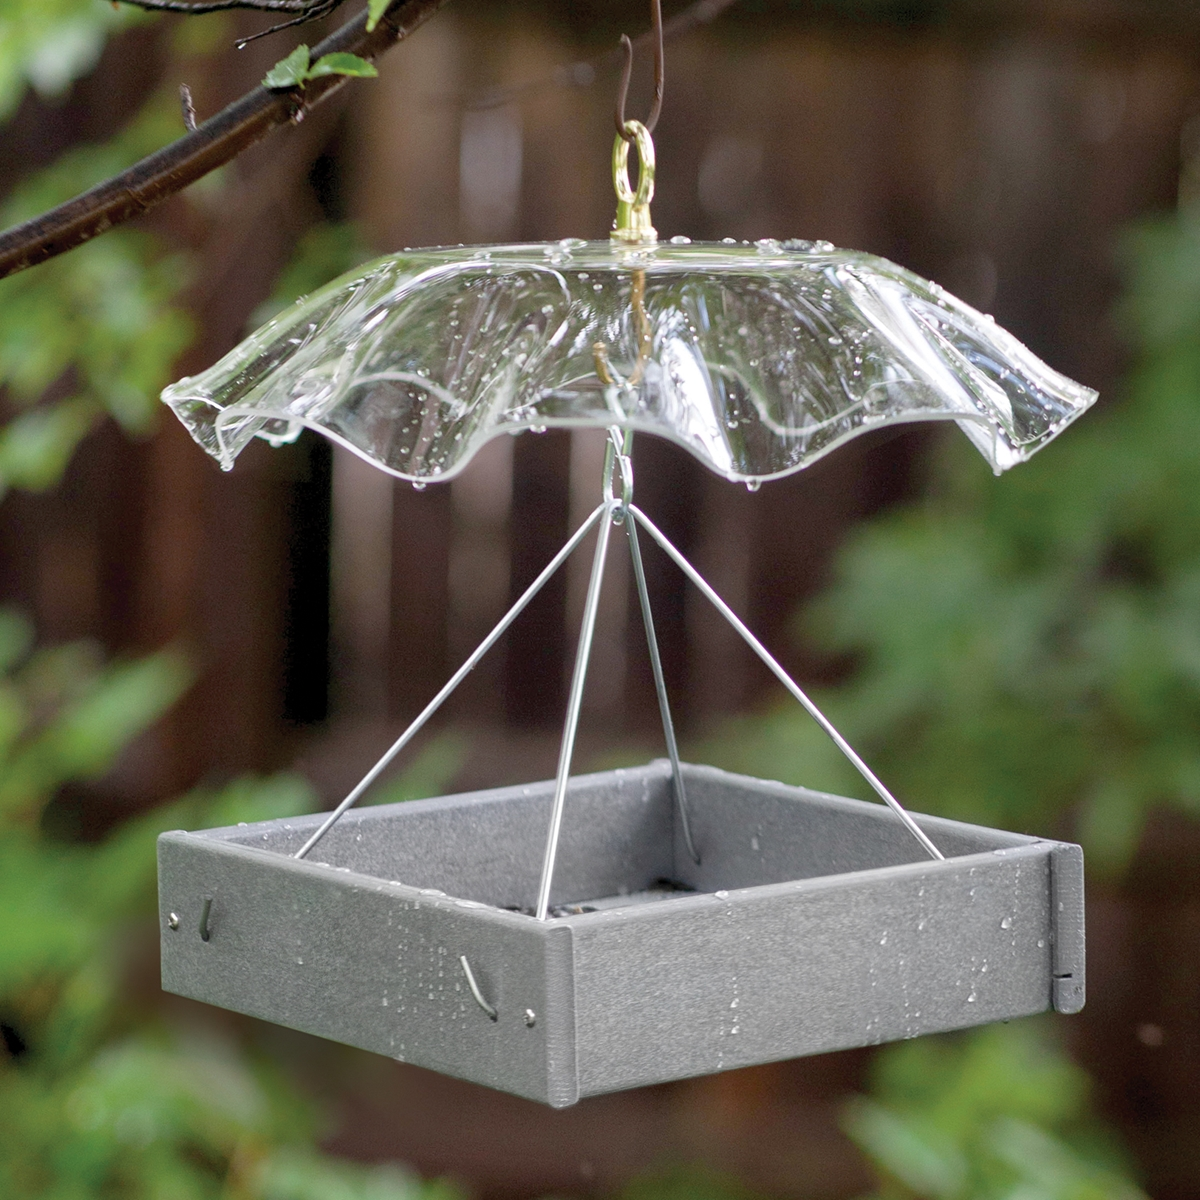 Platform Feeder with Weather Guard